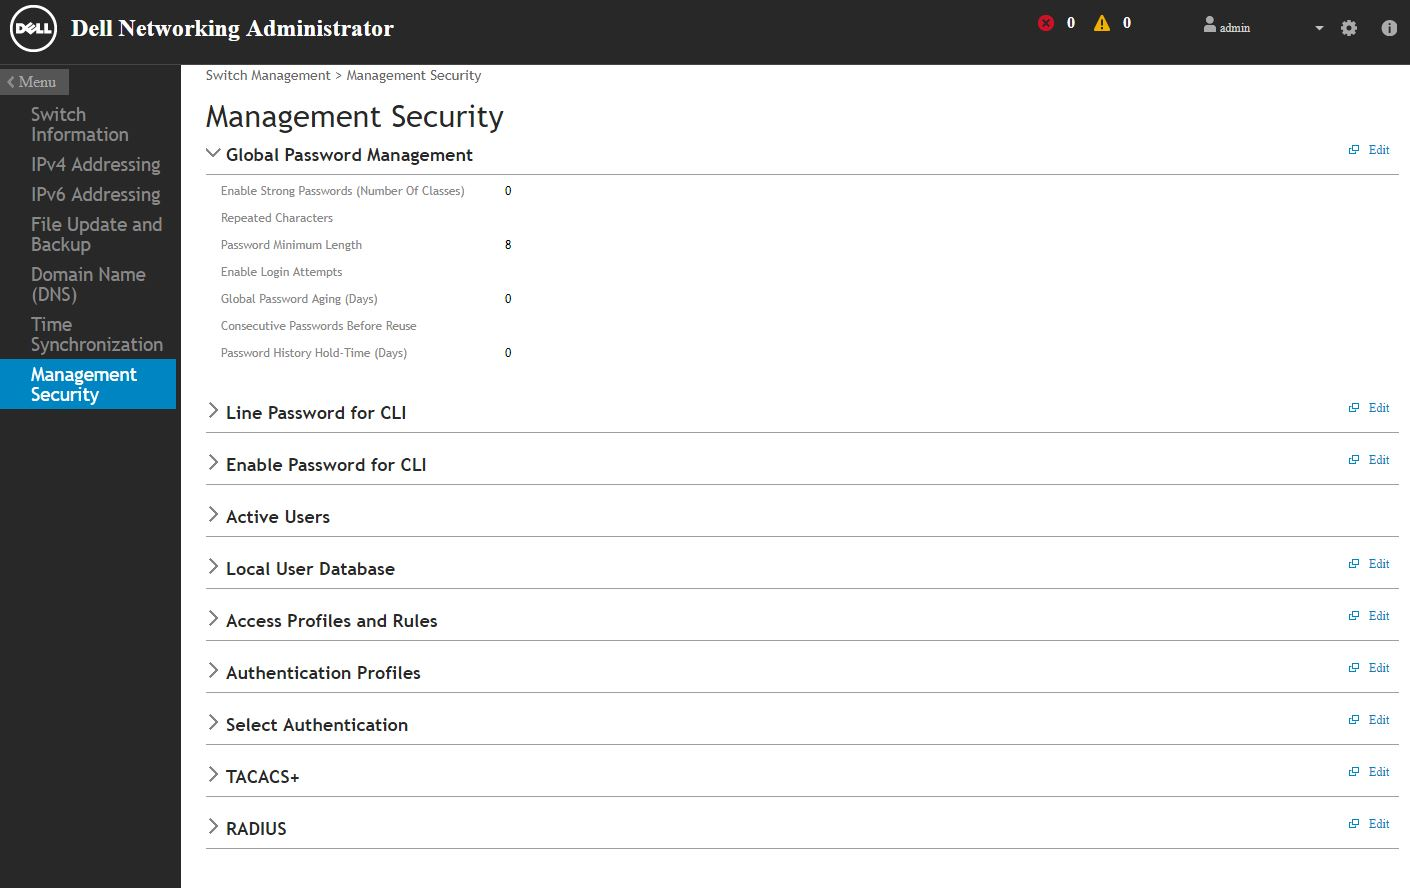 Dell Networking X Series Management Security